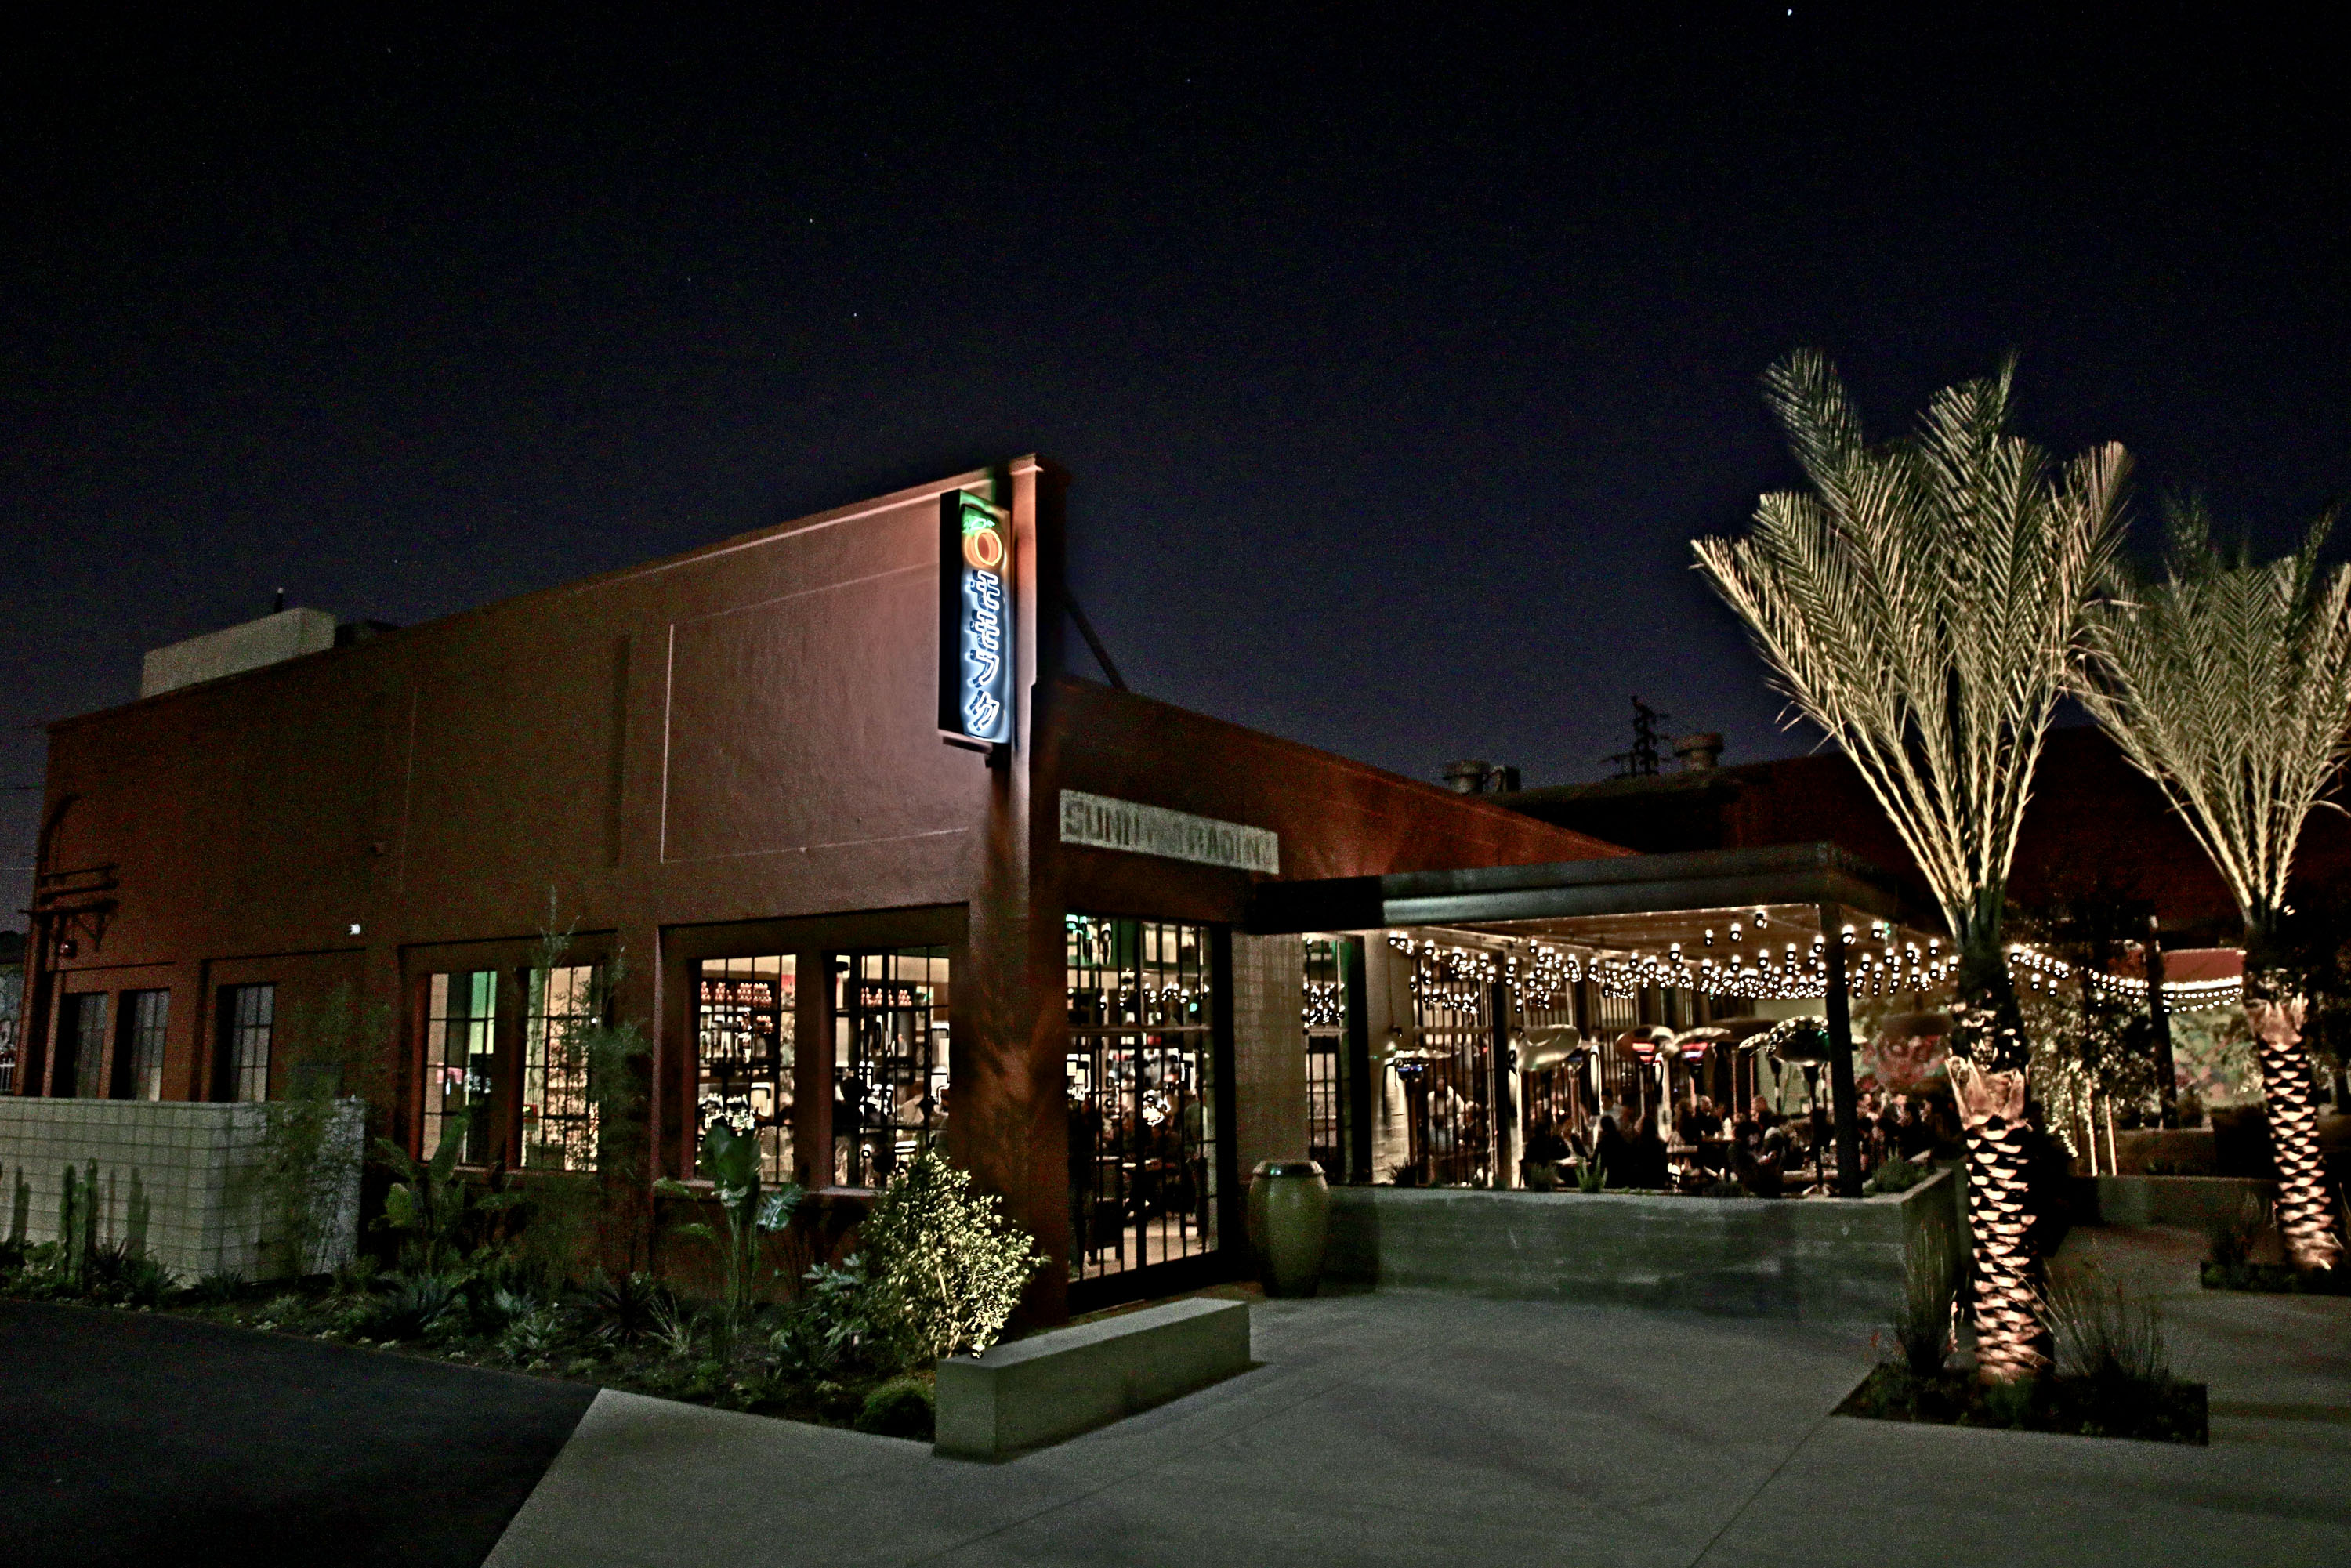 David Chang restaurant Majordomo in Los Angeles, CA, after dark and lit from within